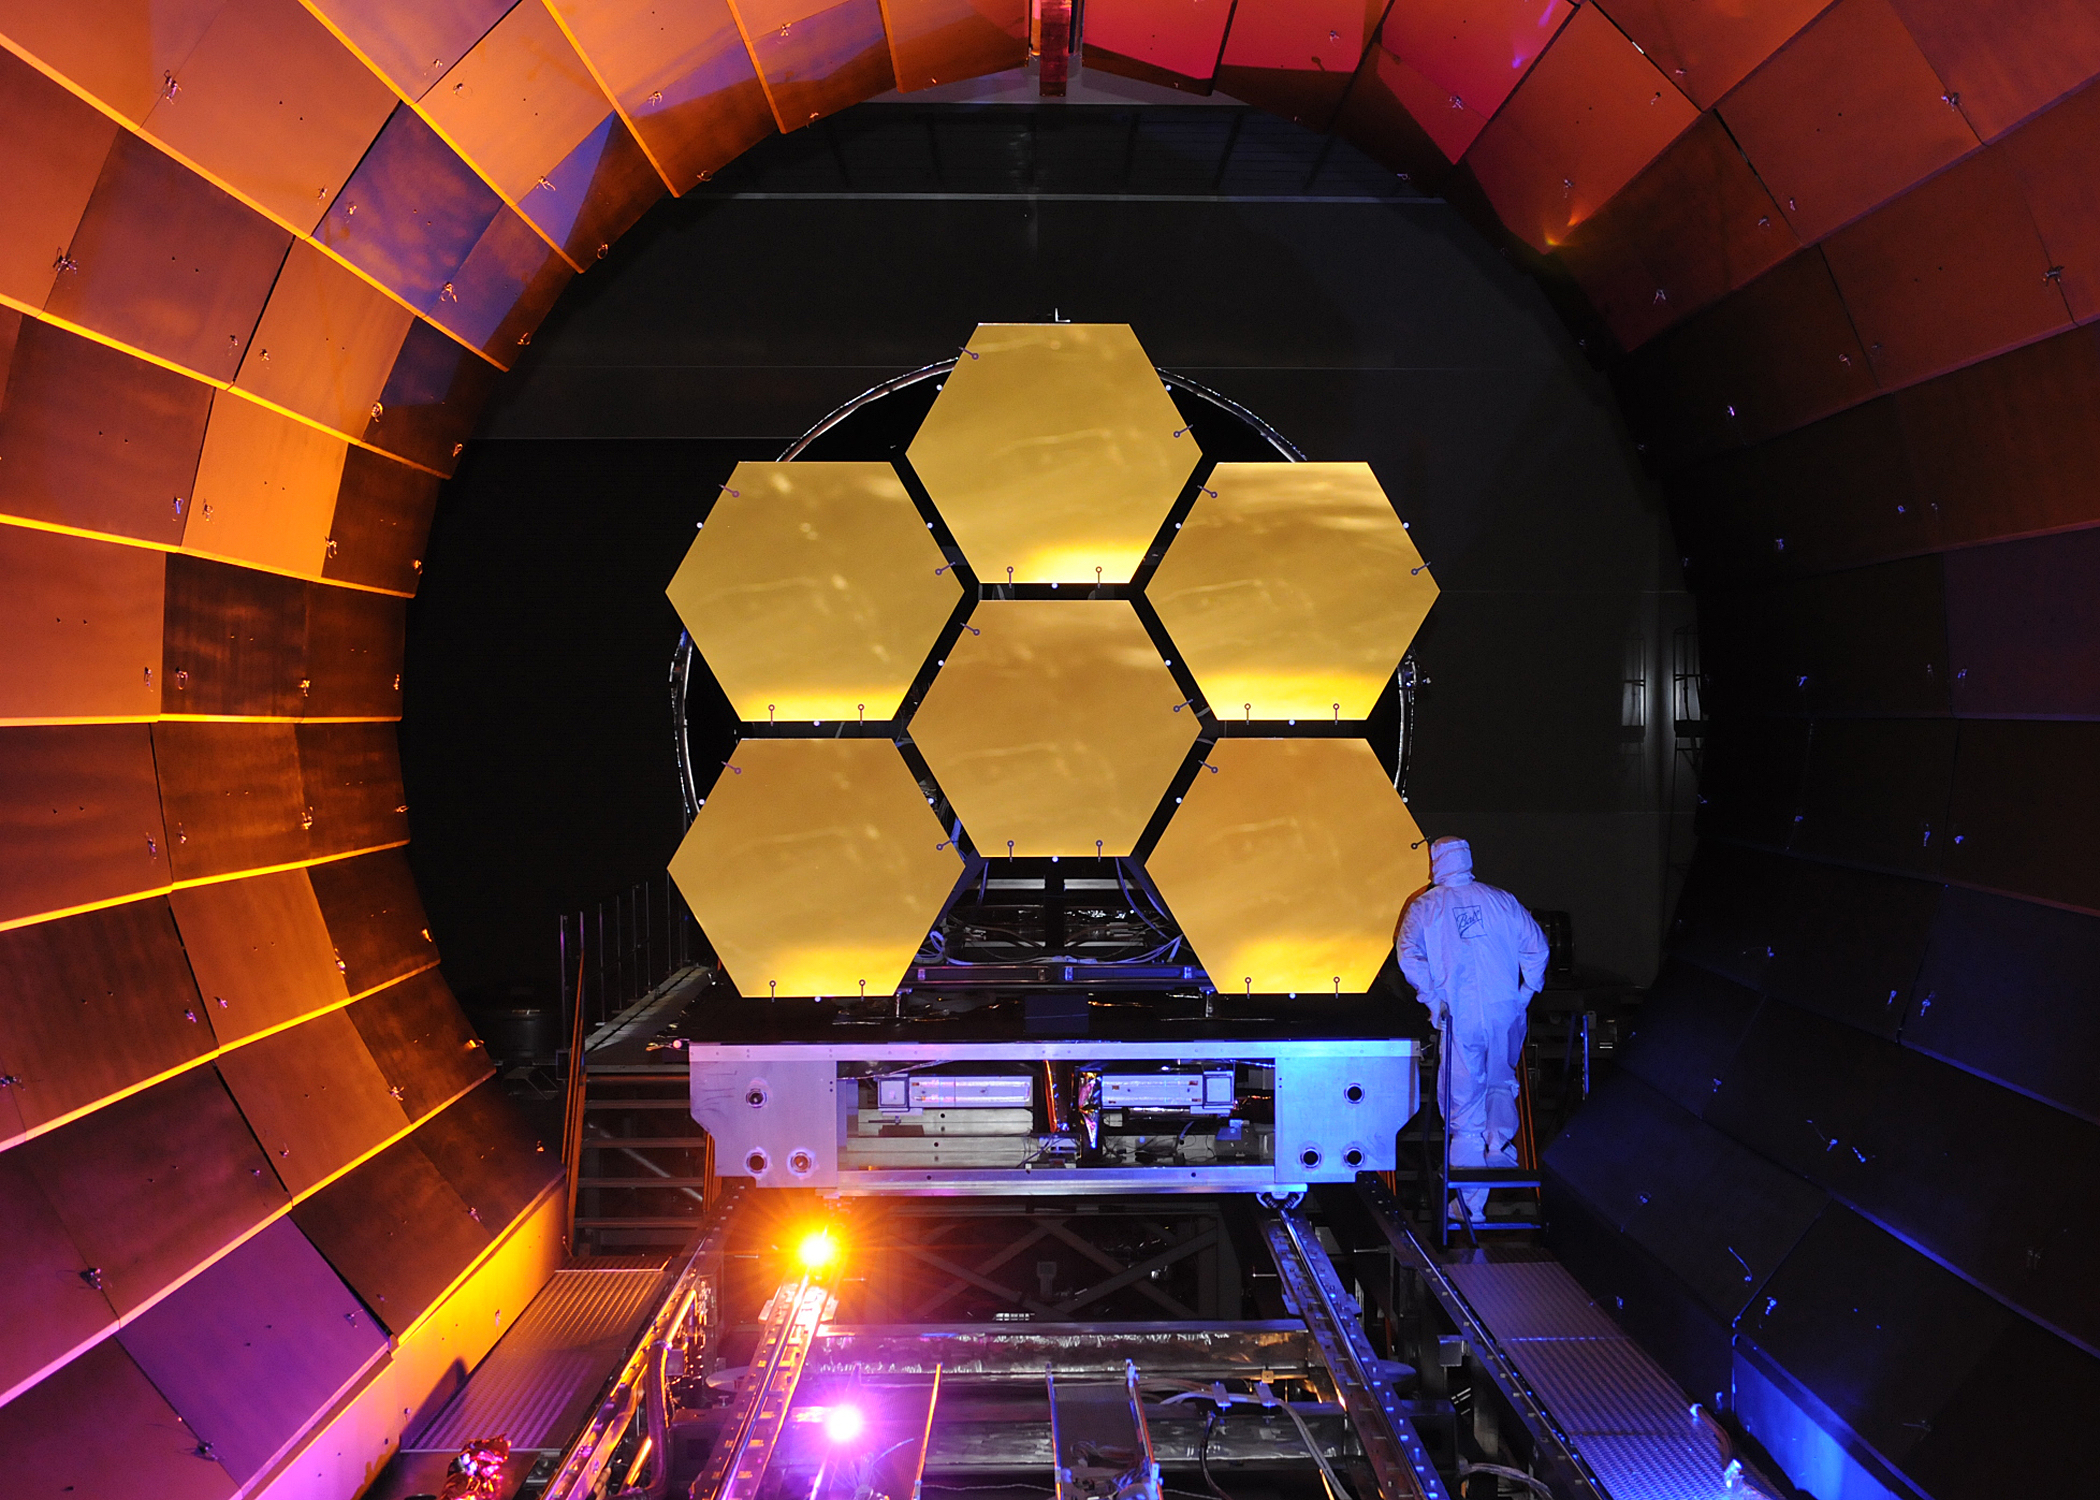 James Webb Space Telescope Mirrors Undergoing Cryogenic Testing